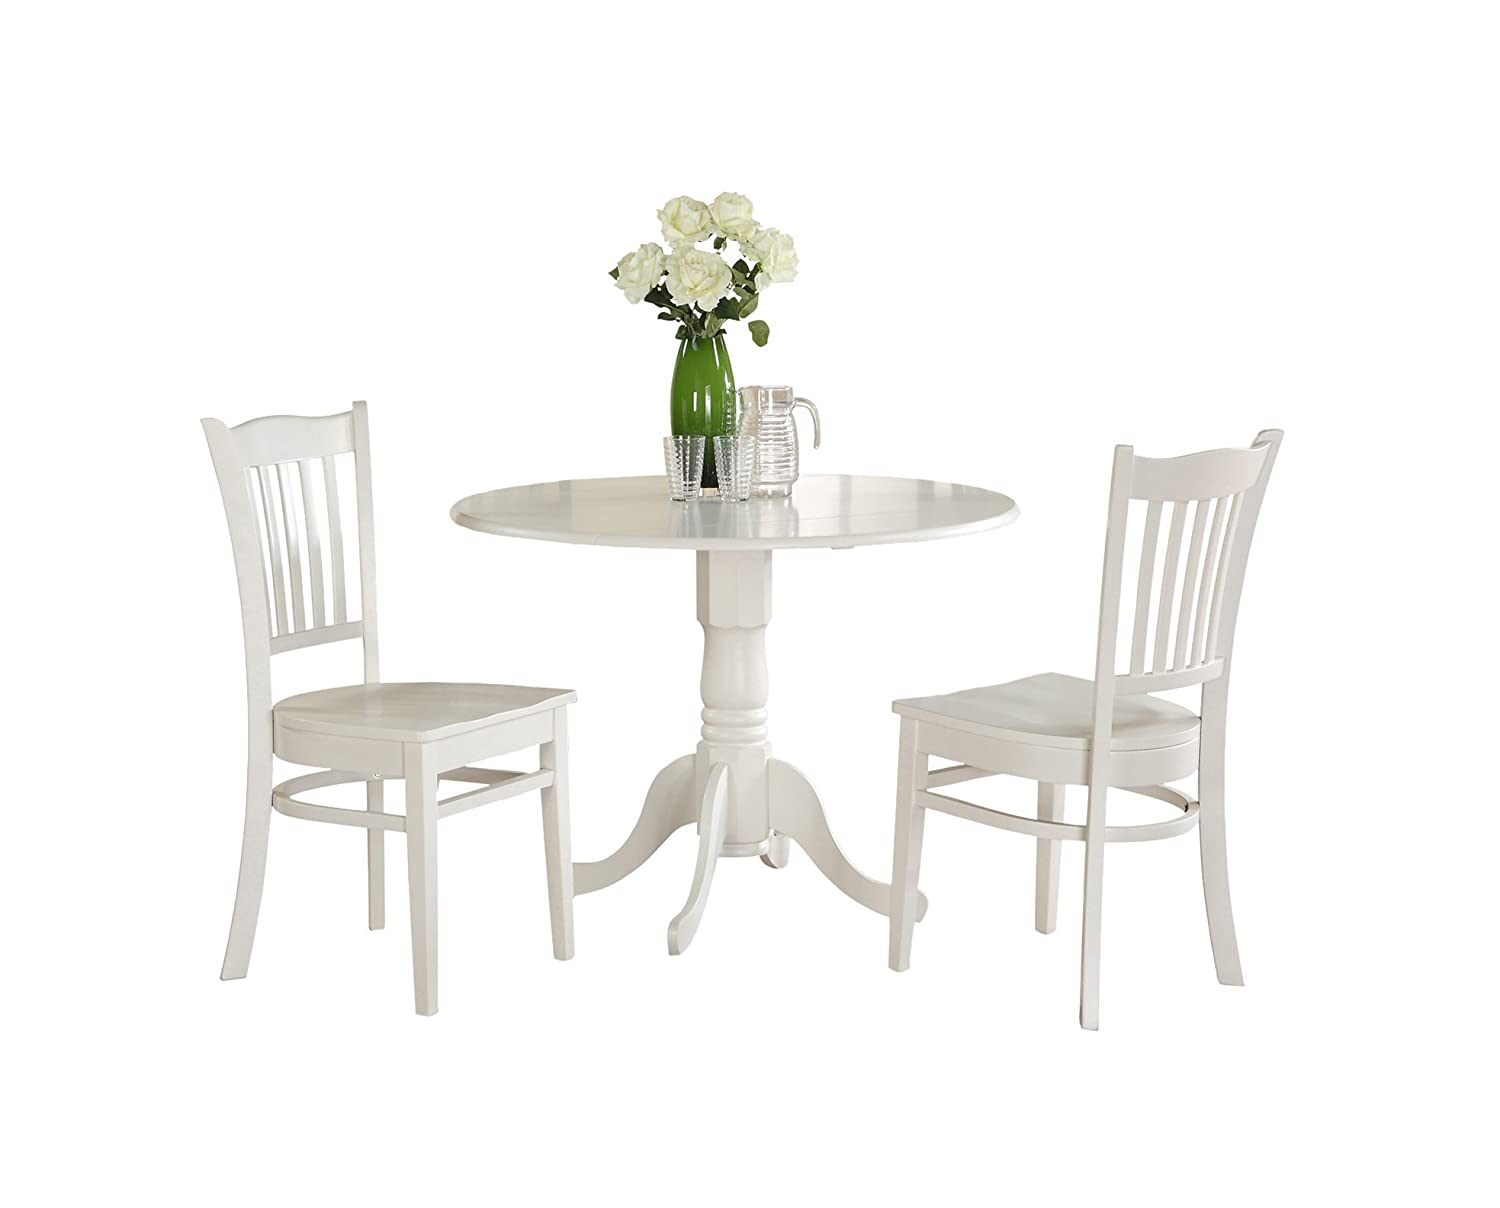 East West Furniture DLGR3-WHI-W 3-Piece Kitchen Table Set, Linen White Finish